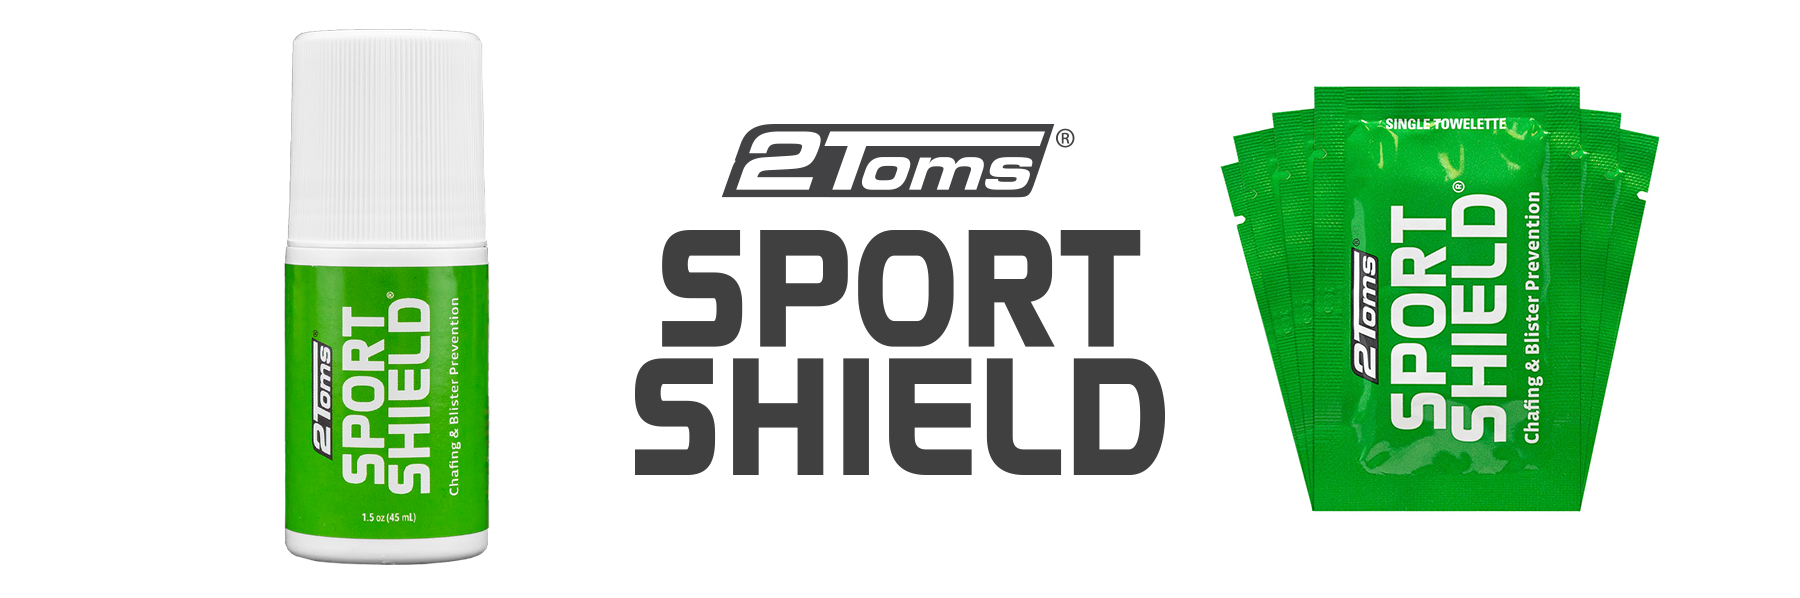 SportShield with products